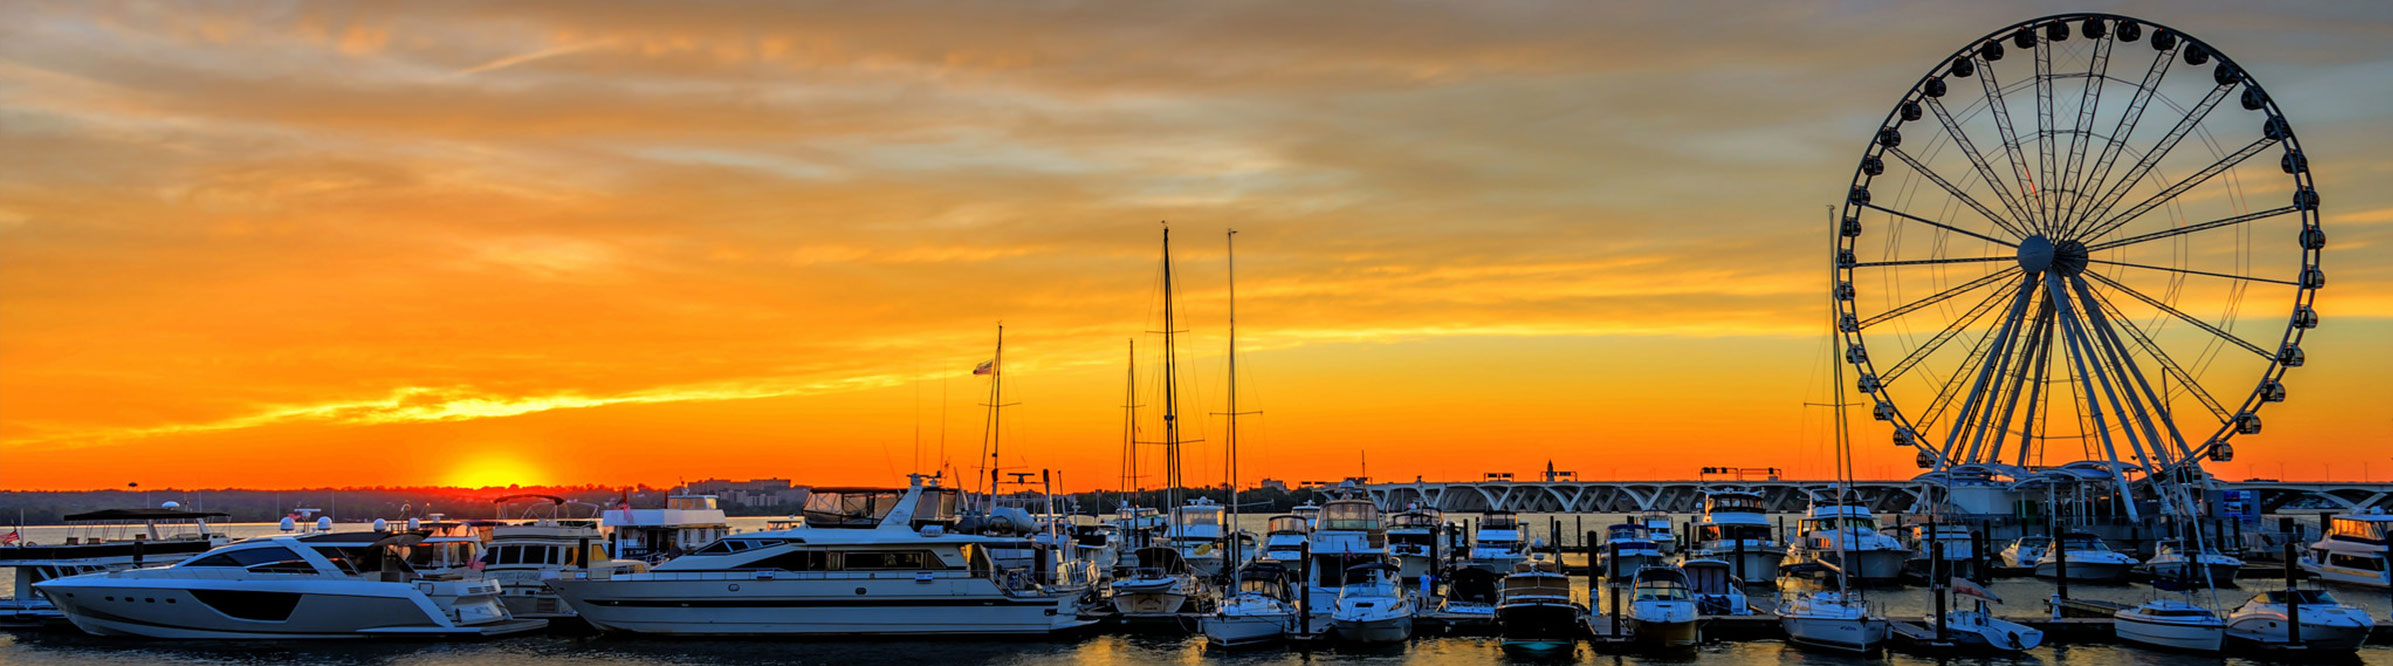 Chesapeake Bay Marina at National Harbor | National Harbor